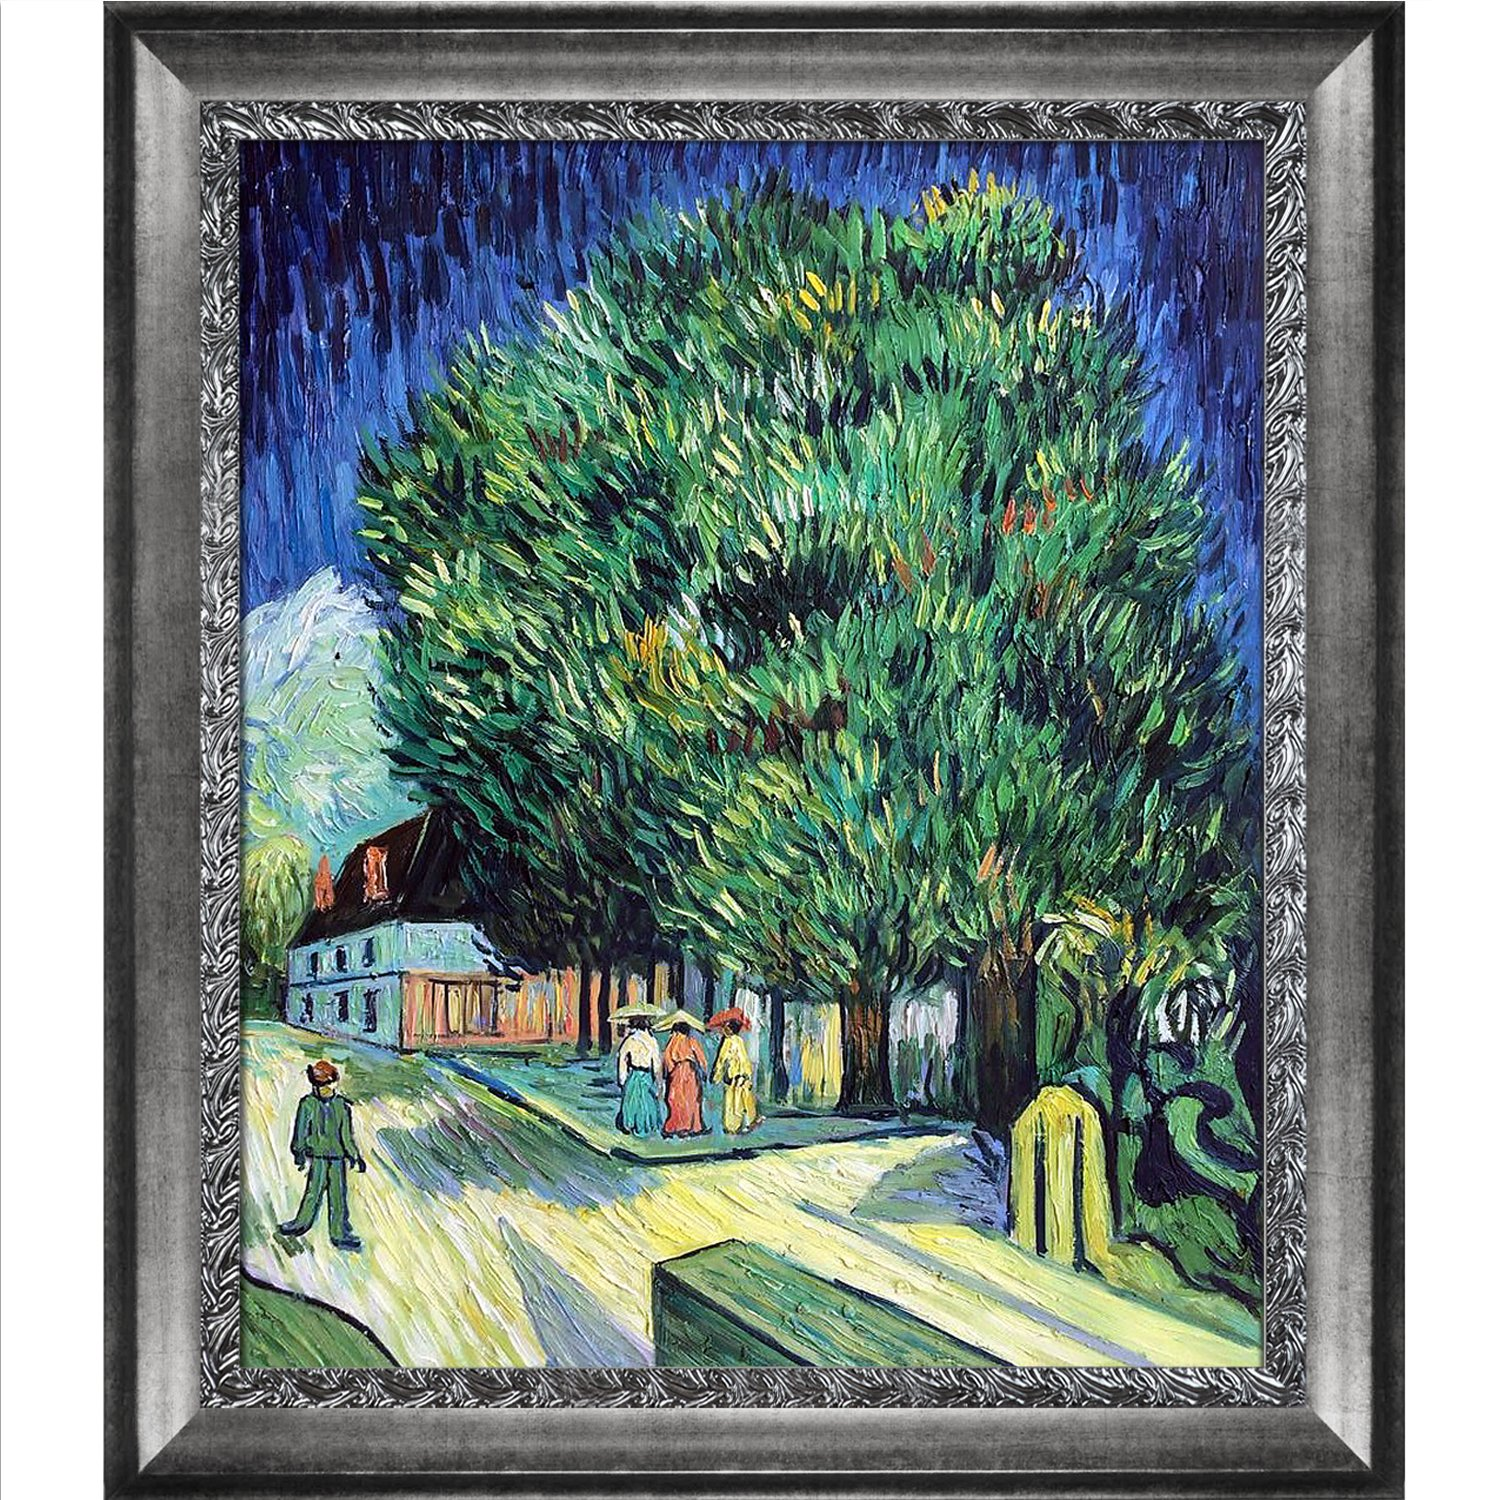 overstockArt Chestnut Trees in Blossom by Van Gogh with Distressed Ornate Silver Combo Frame